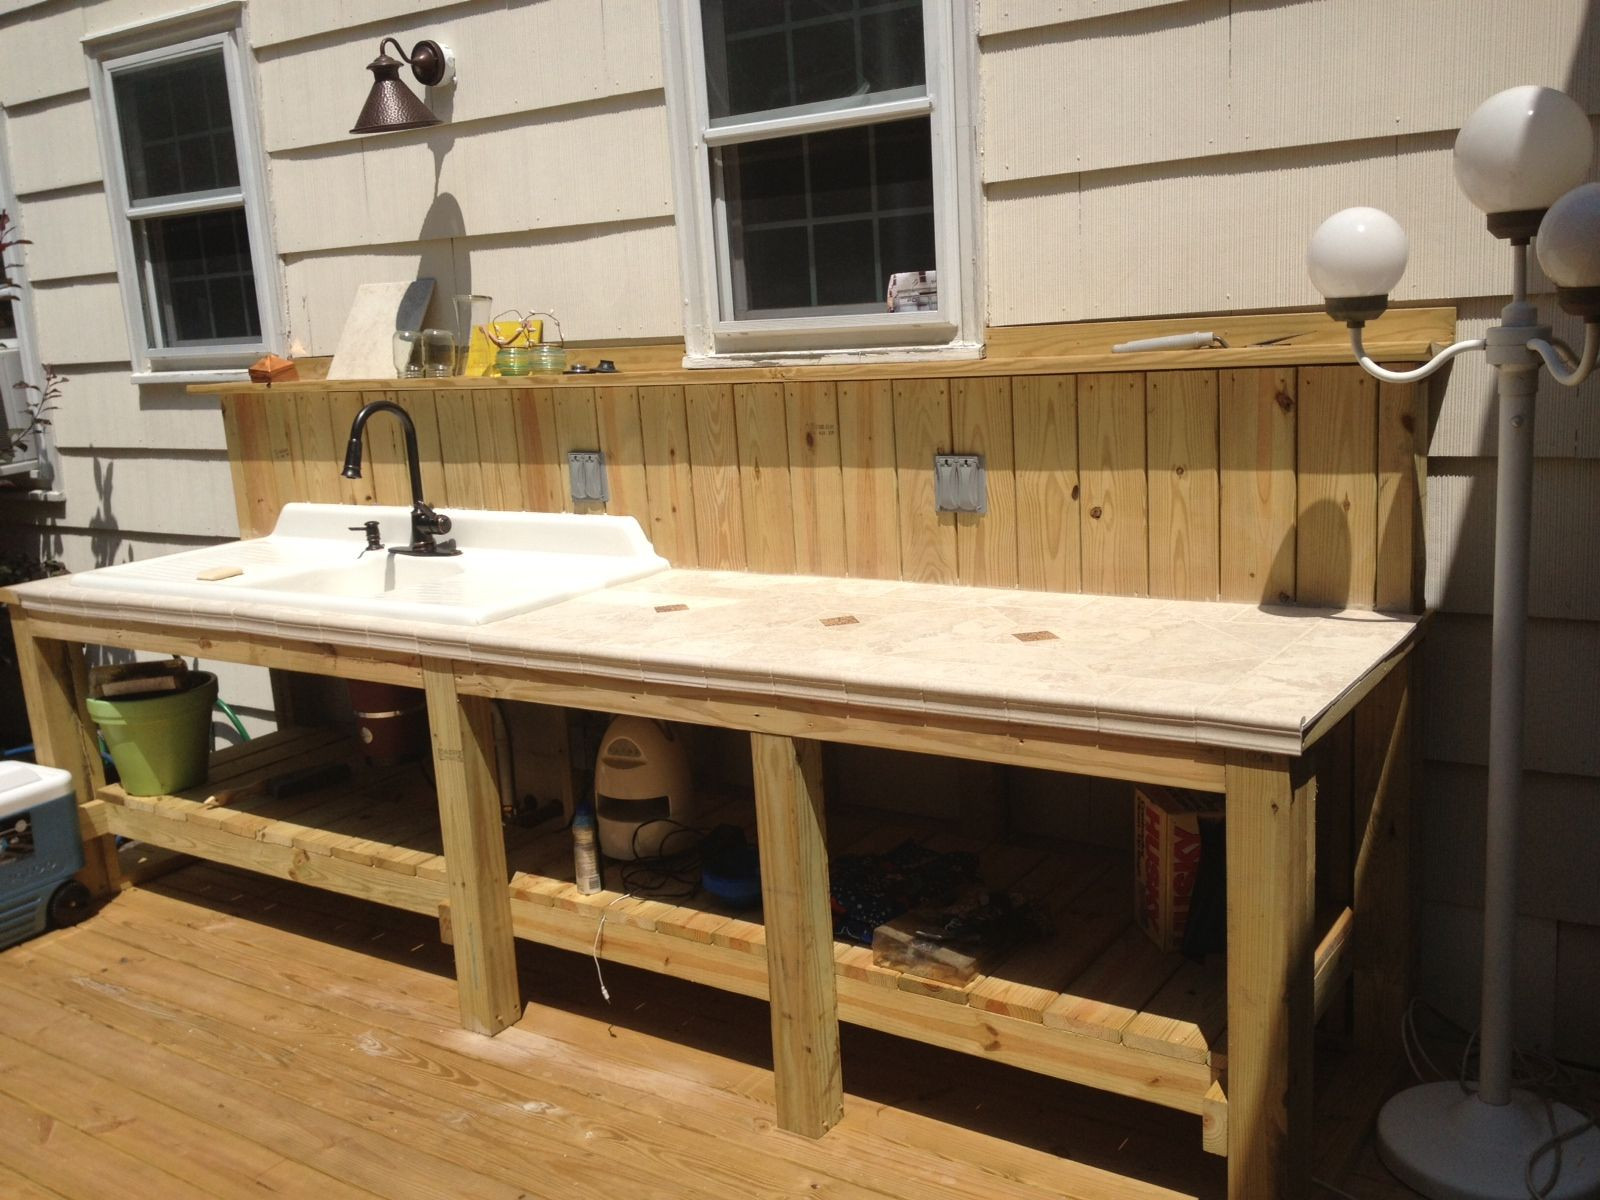 outdoor kitchen sink Outdoor sink and countertop area complete with garbage disposal